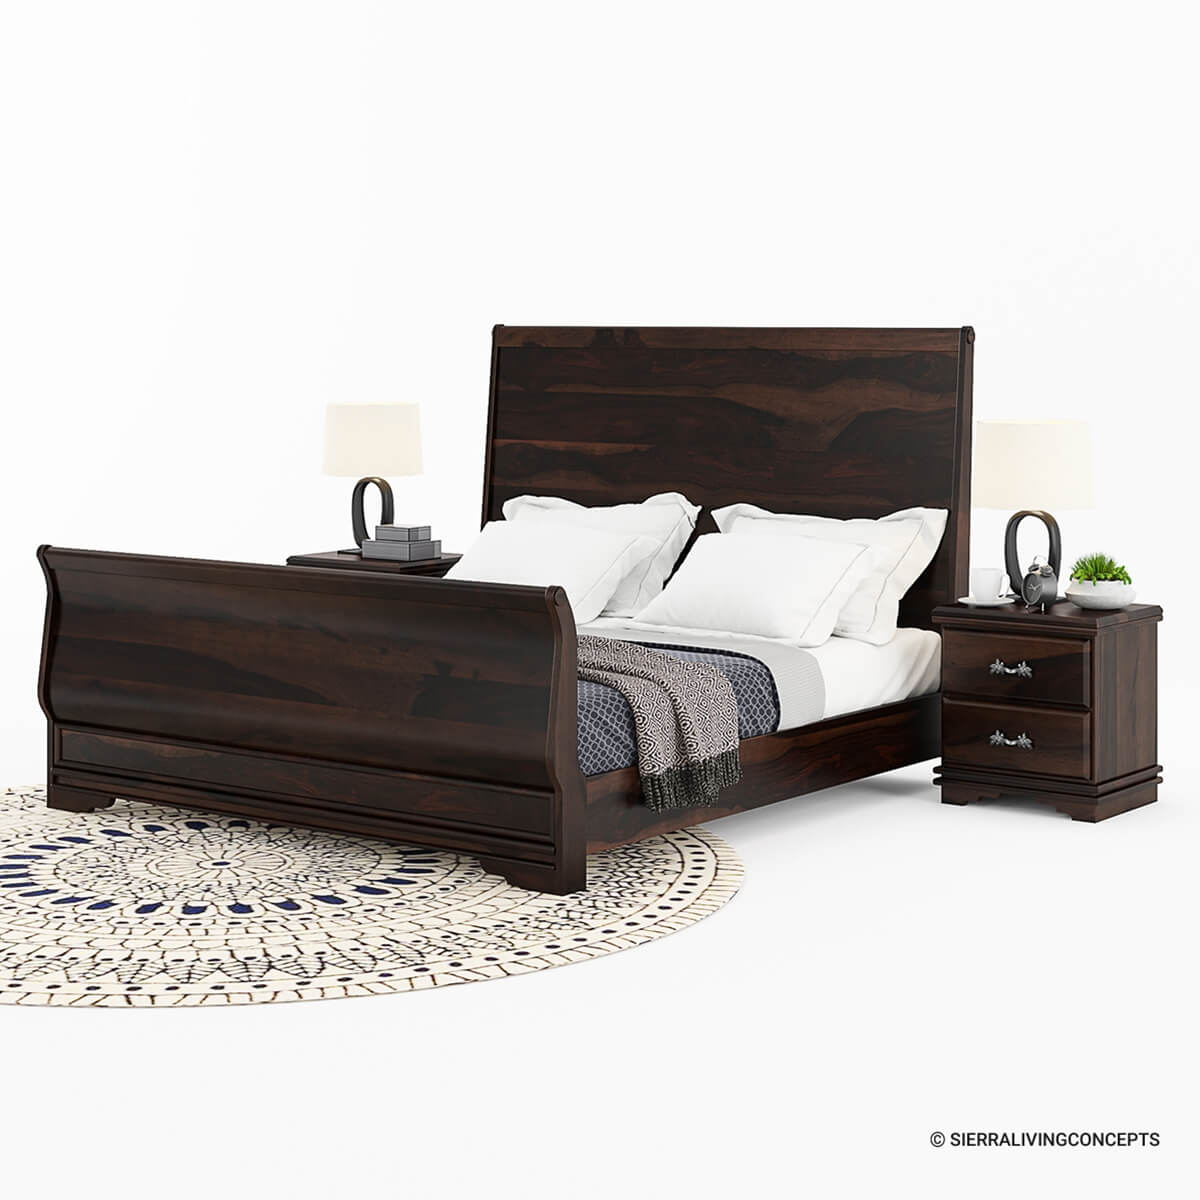 sleigh back solid wood king size platform bed frame. Black Bedroom Furniture Sets. Home Design Ideas